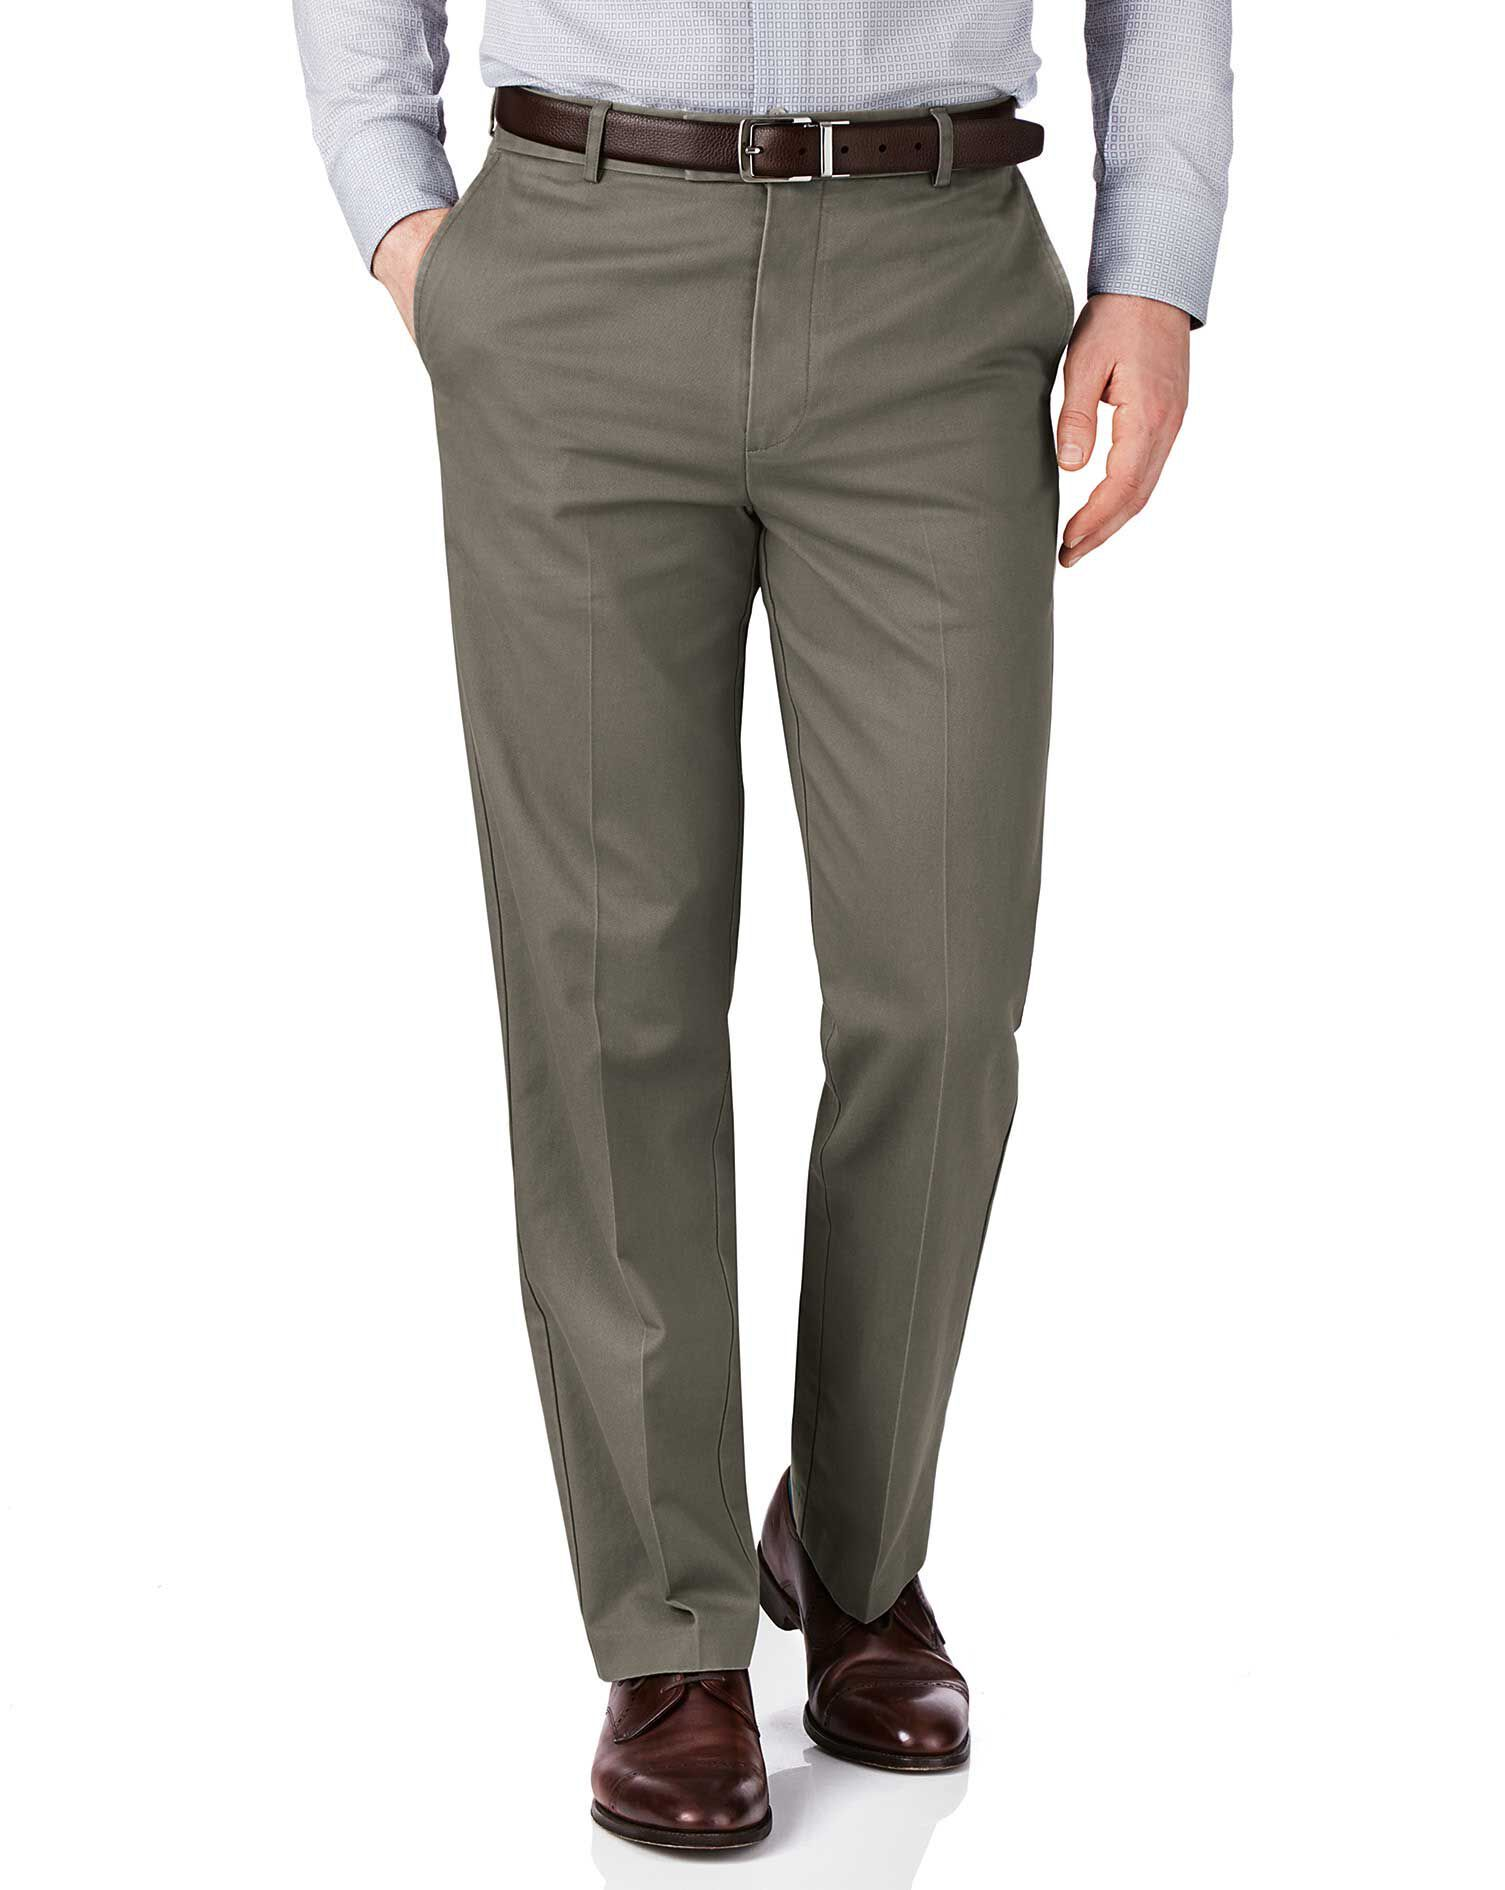 Olive Green Slim Fit Flat Front Non-Iron Cotton Chino Trousers Size W42 L30 by Charles Tyrwhitt